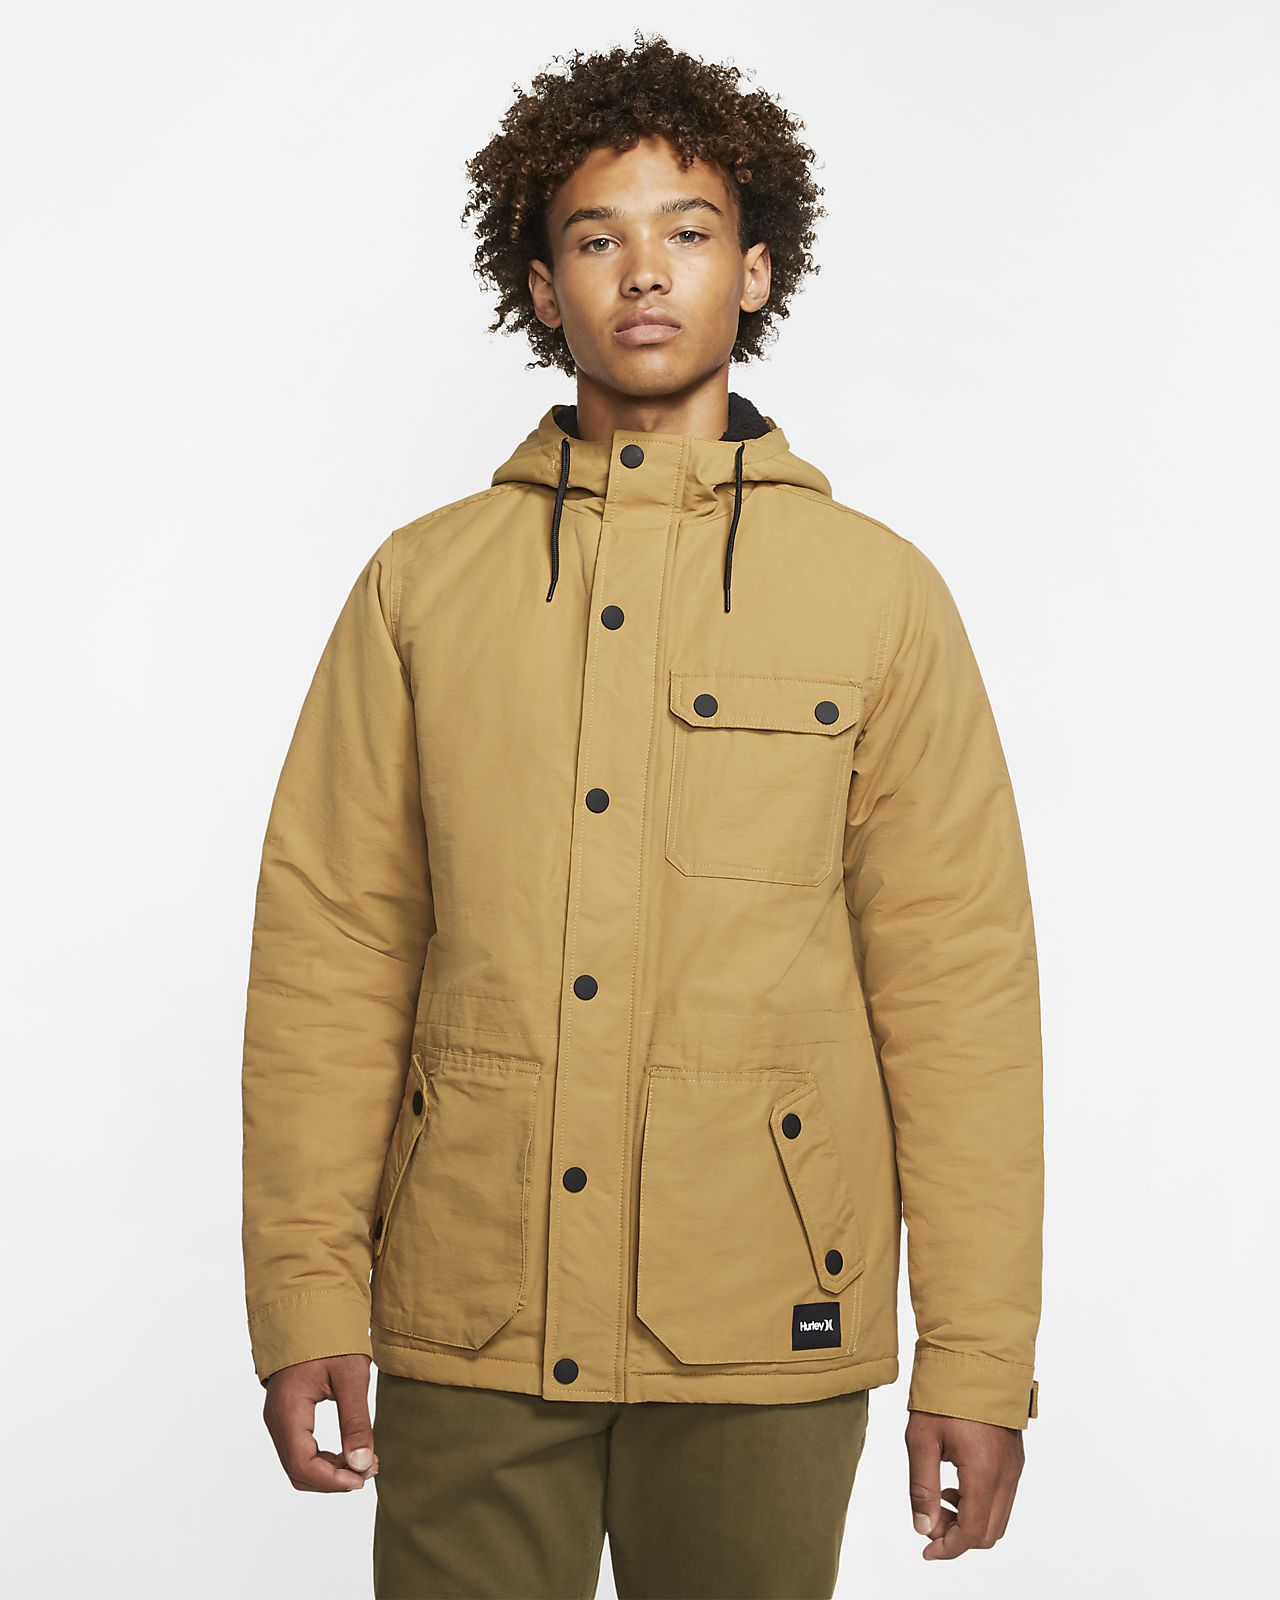 Hurley Slammer Men's Jacket